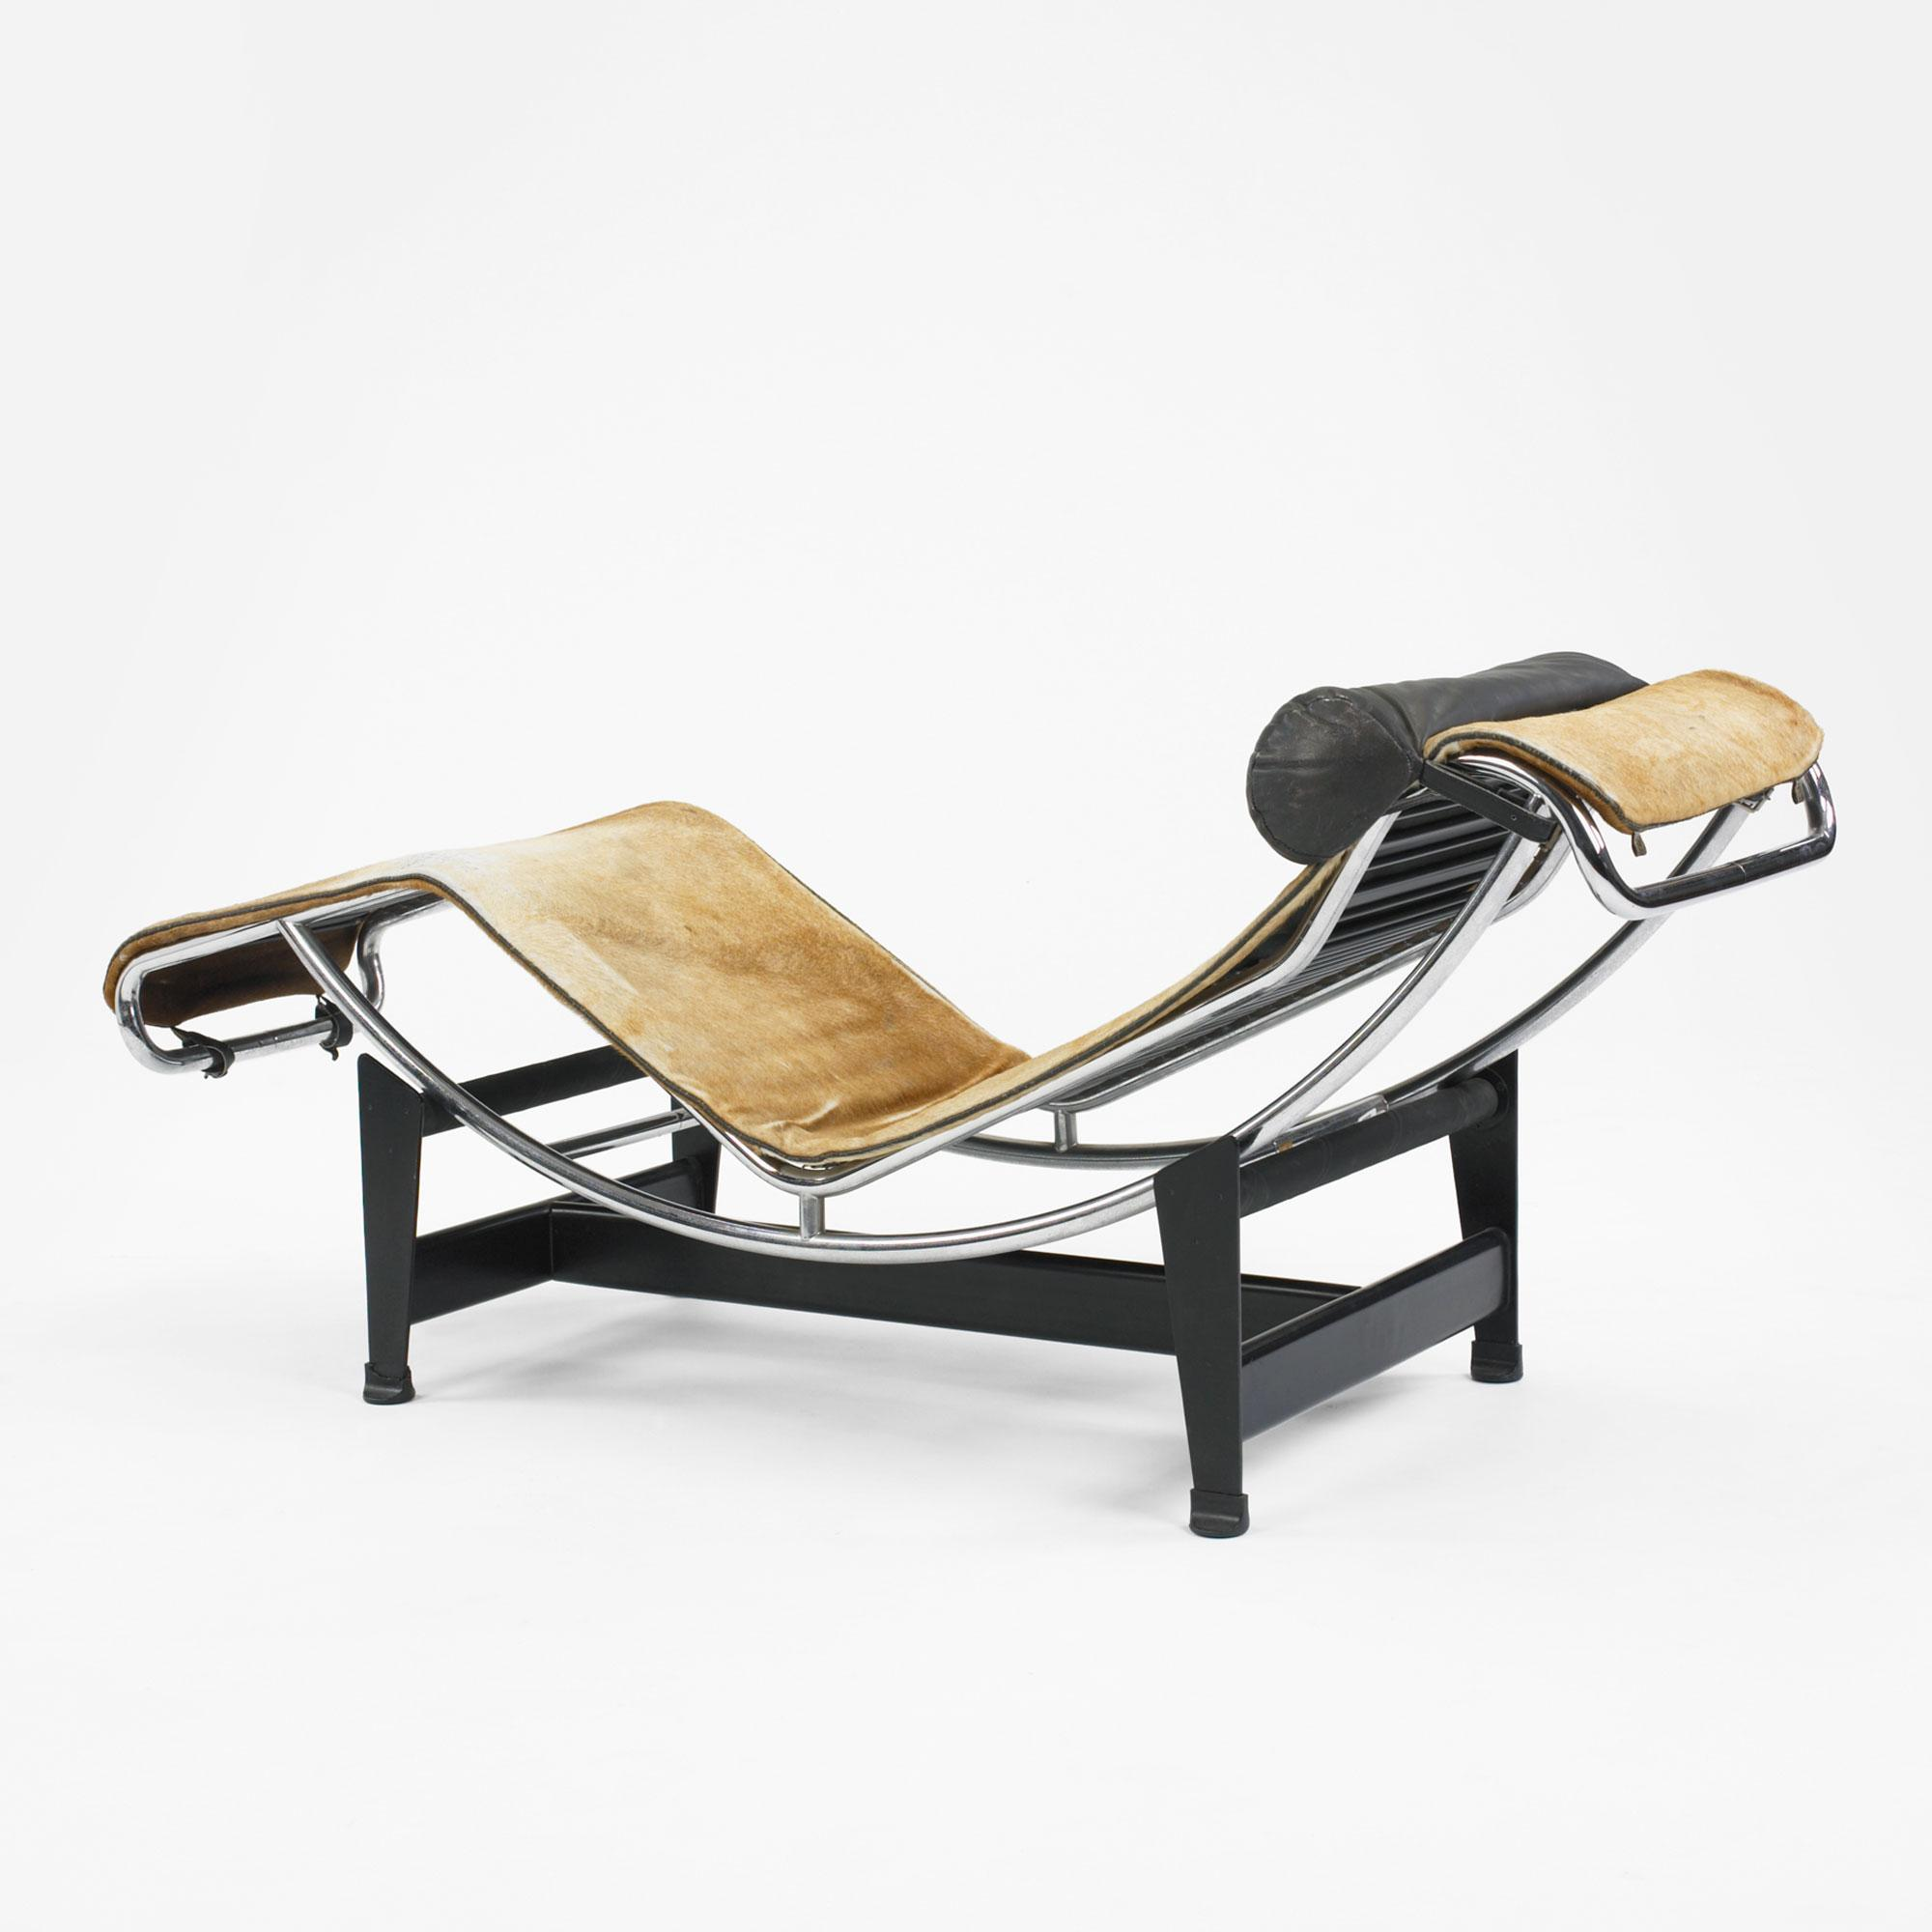 charlotte perriand pierre jeanneret and le corbusier lc 4 chaise lounge. Black Bedroom Furniture Sets. Home Design Ideas